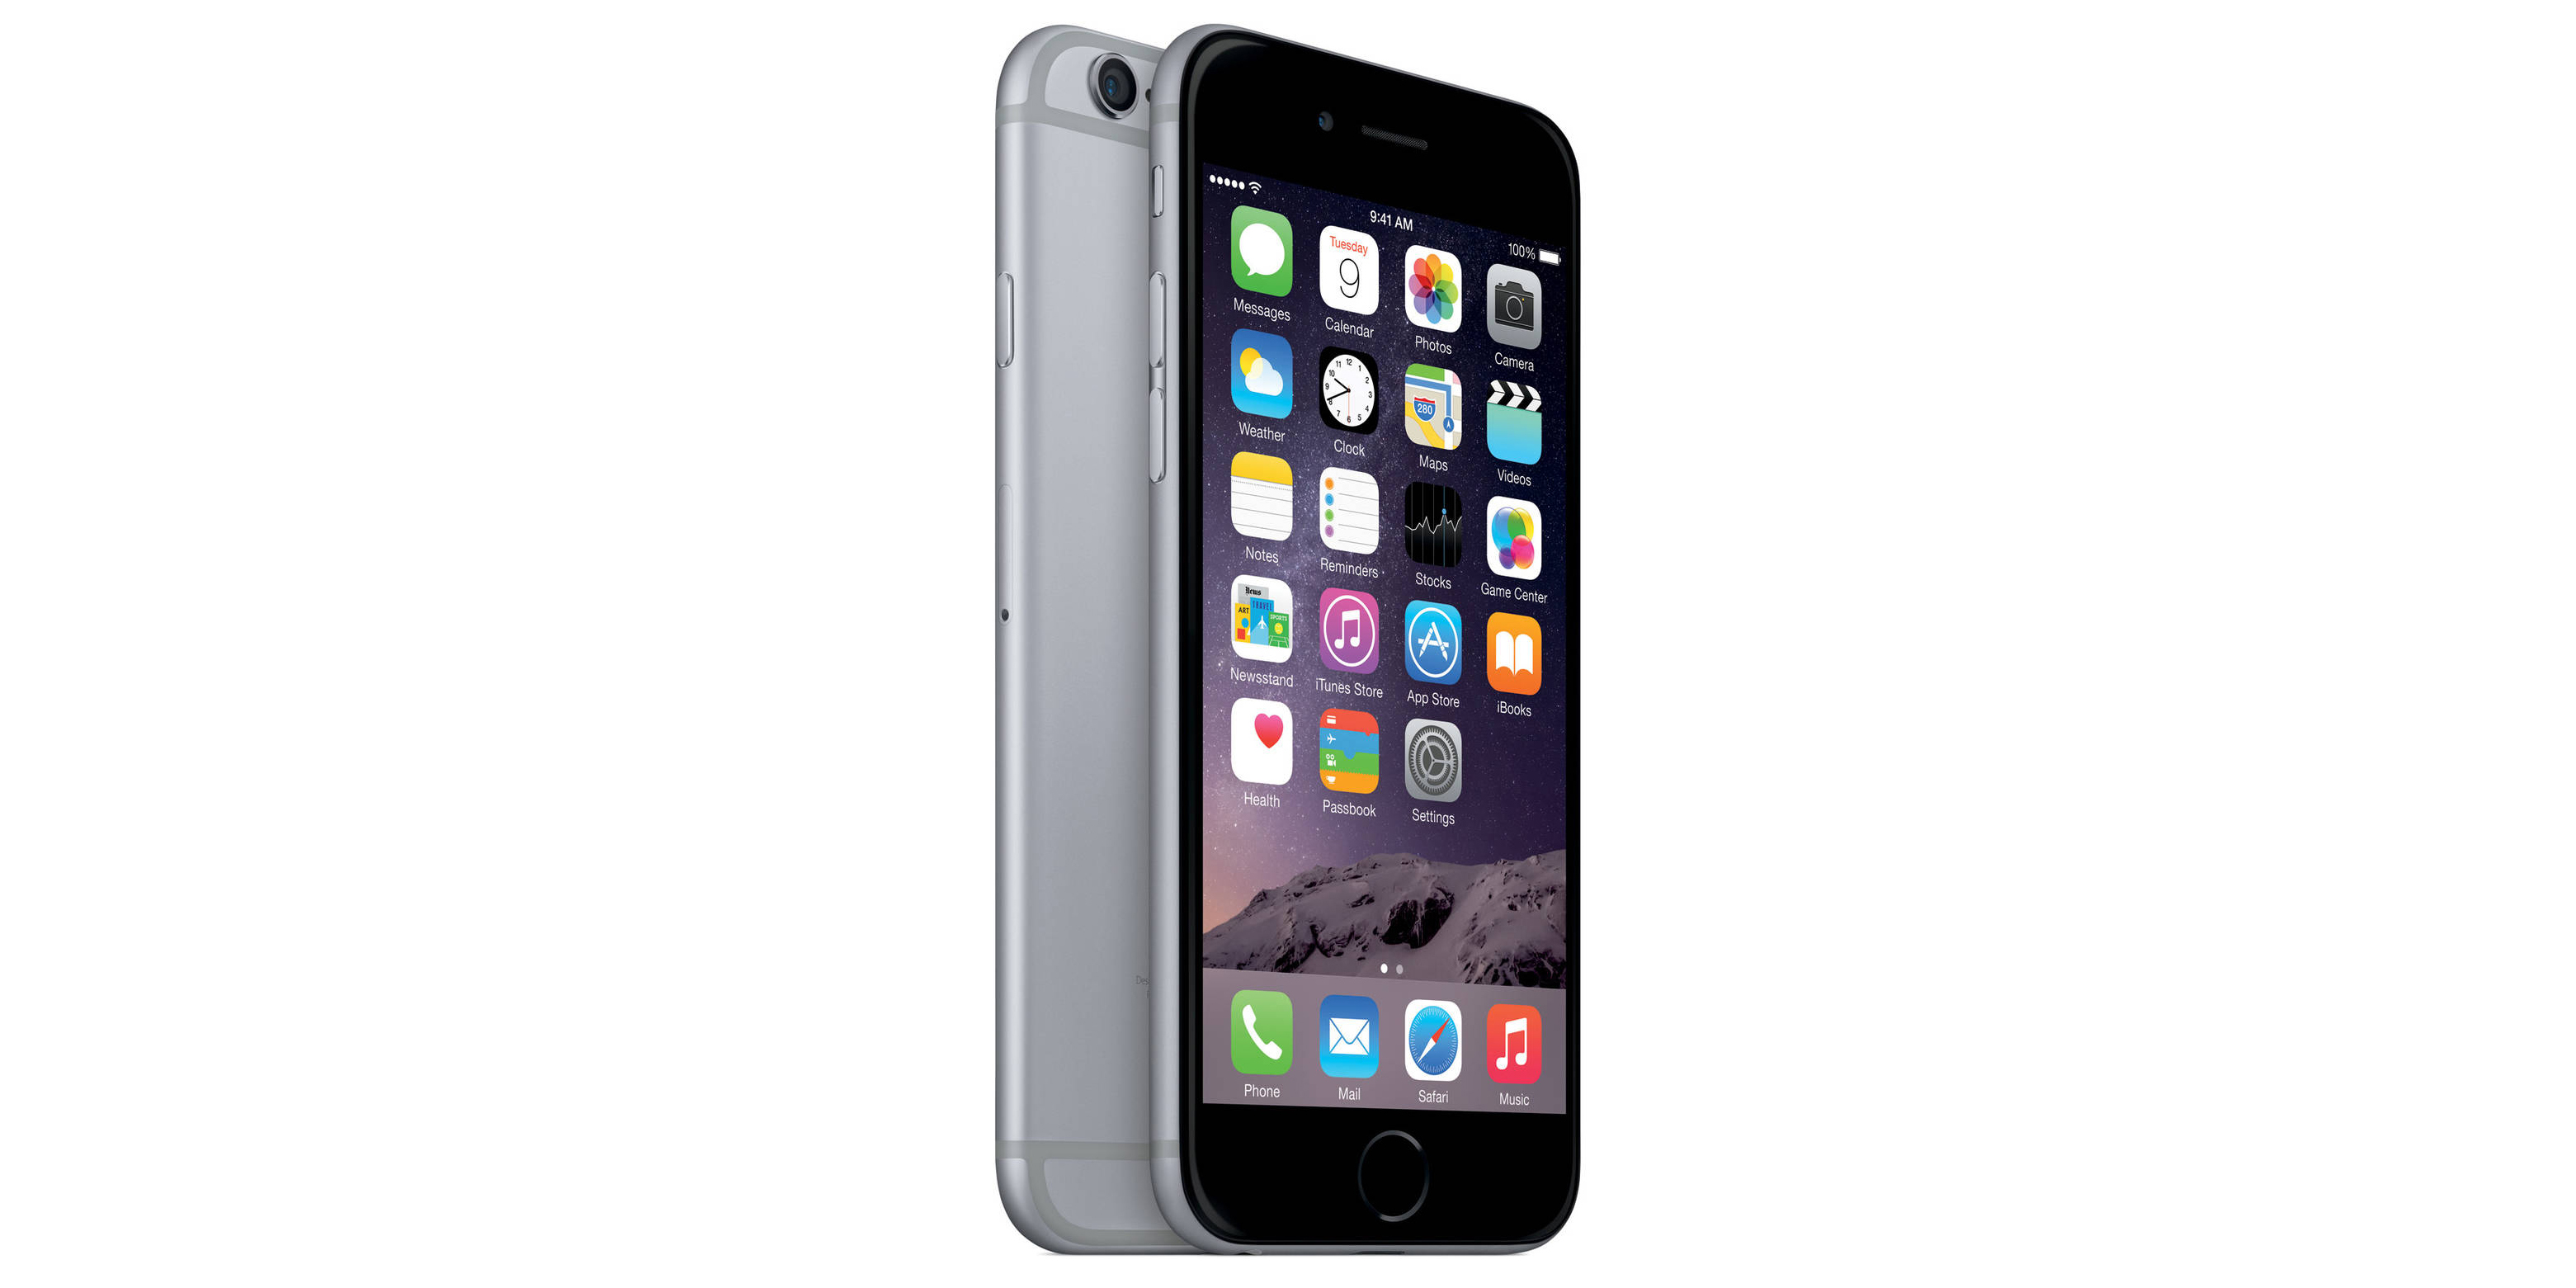 Buying this pre-paid iPhone 6 is a no-brainer at $99 shipped